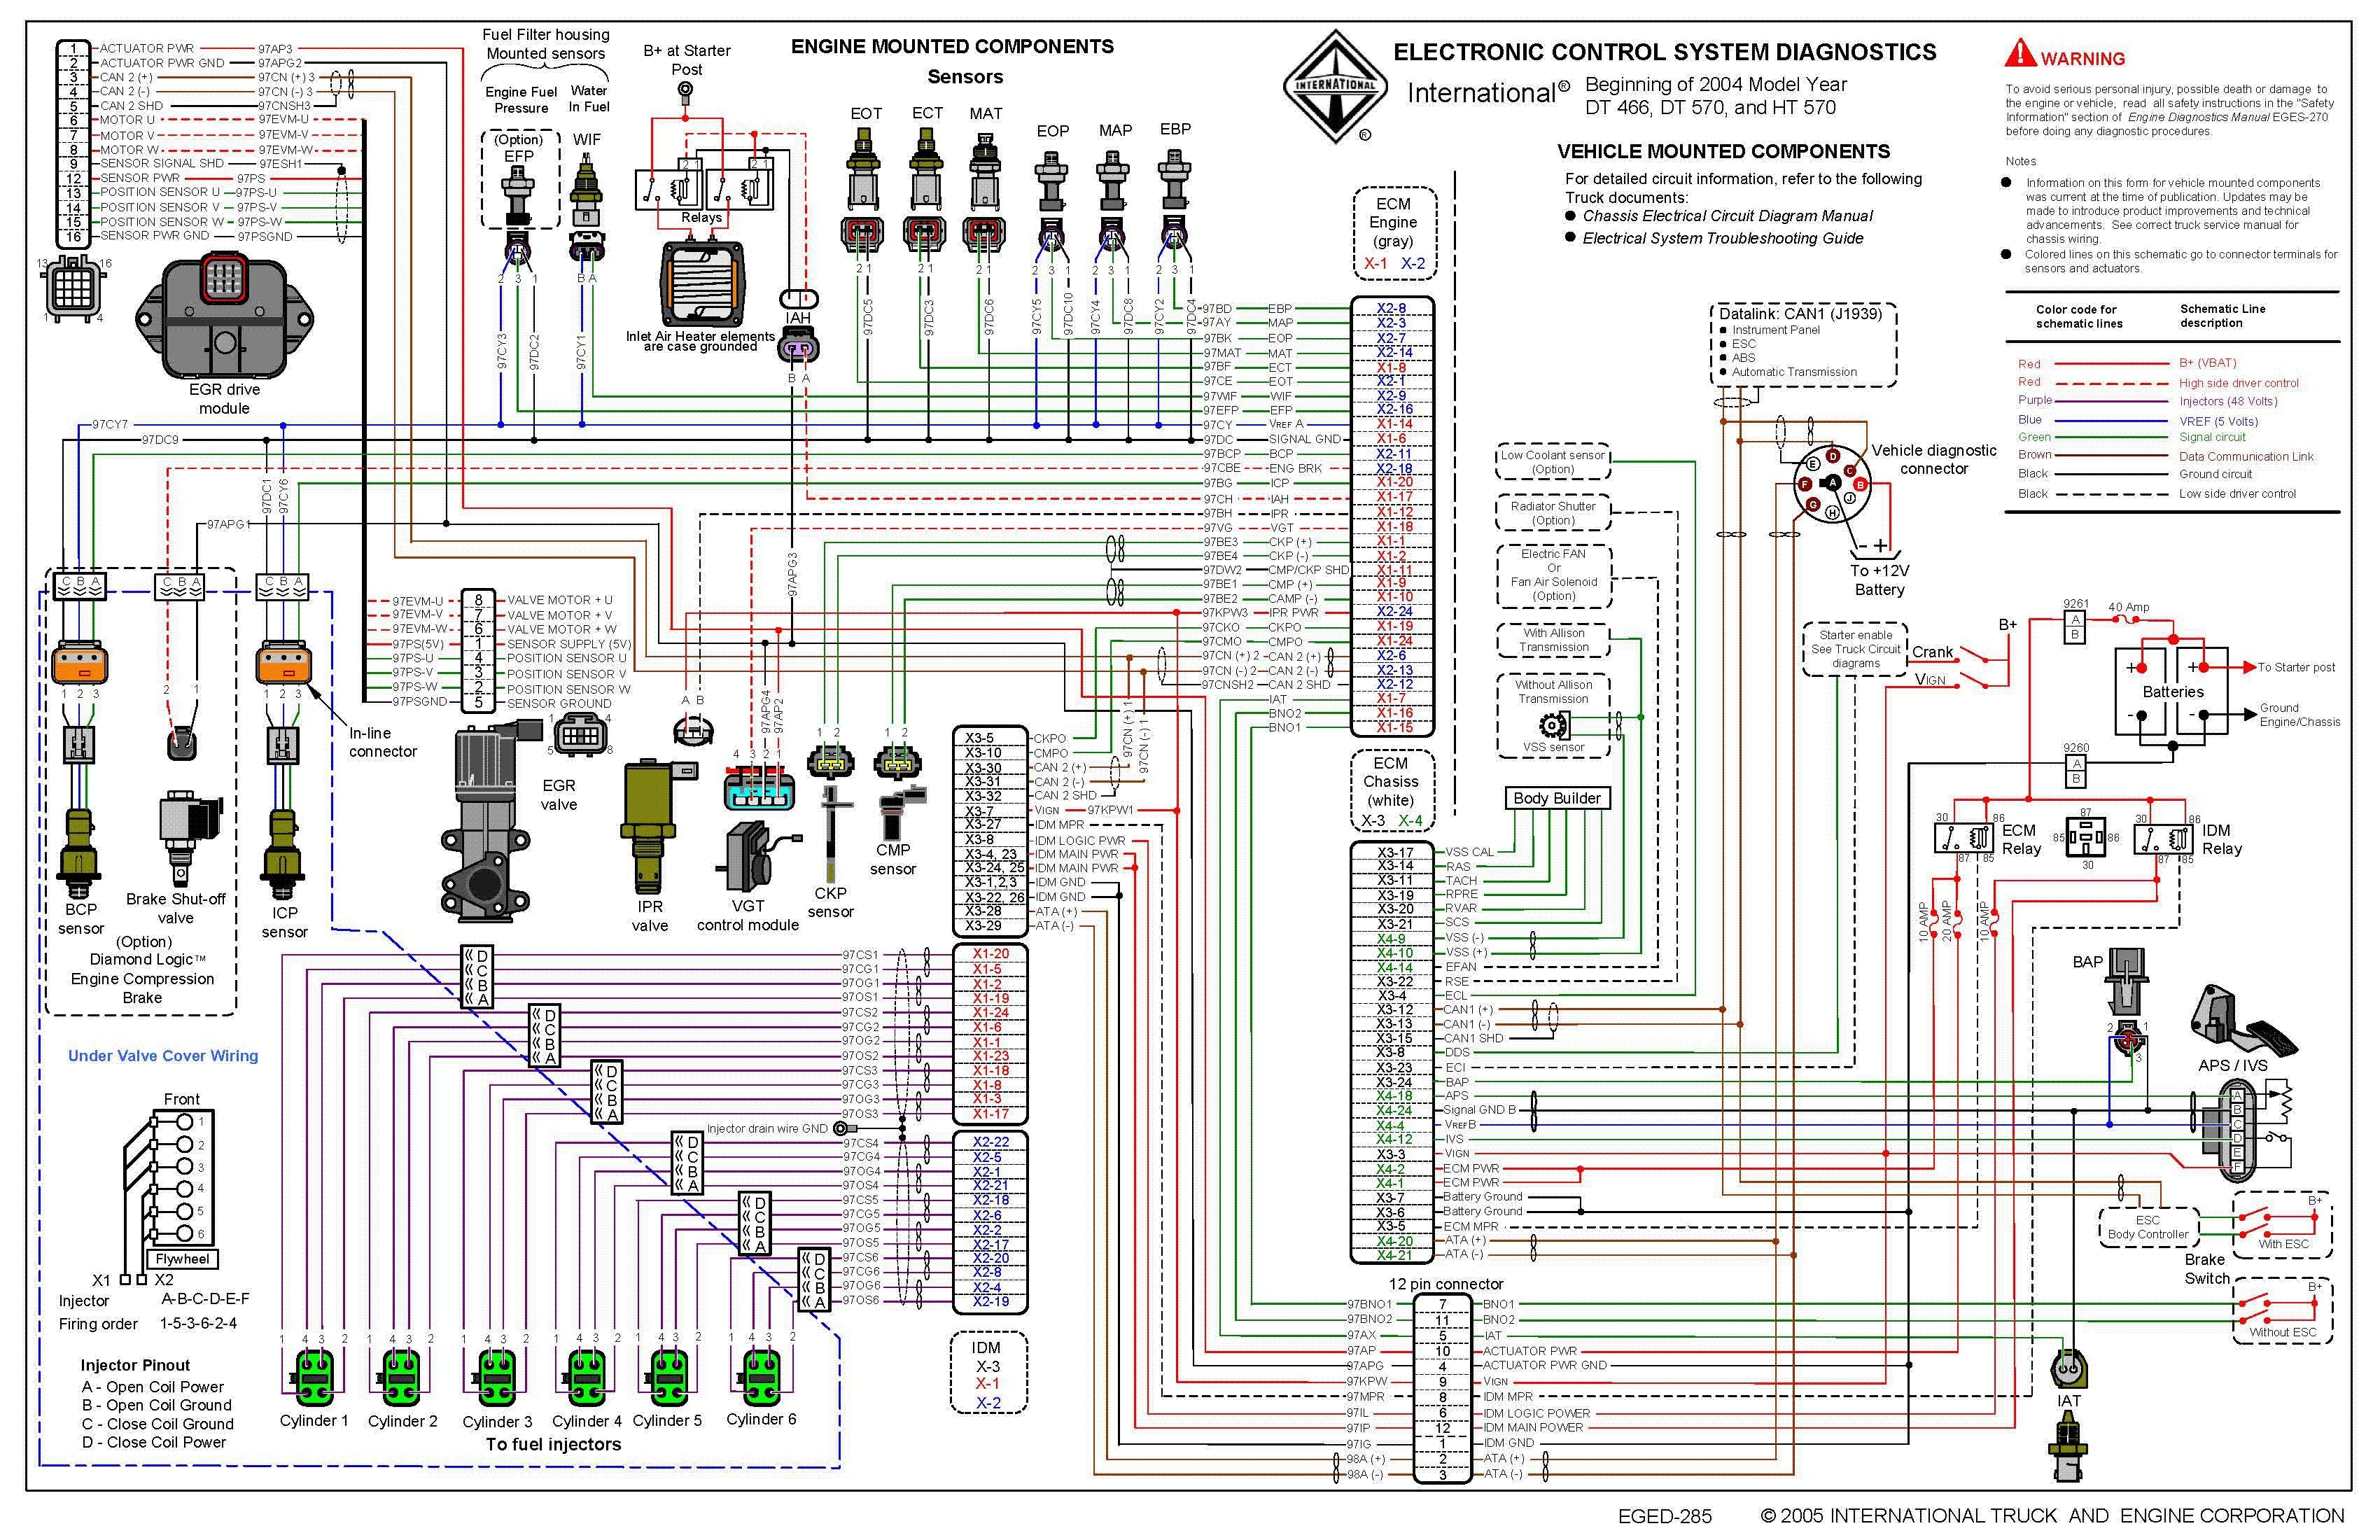 Ih Truck Wiring Diagram With Images Powerstroke Engineering